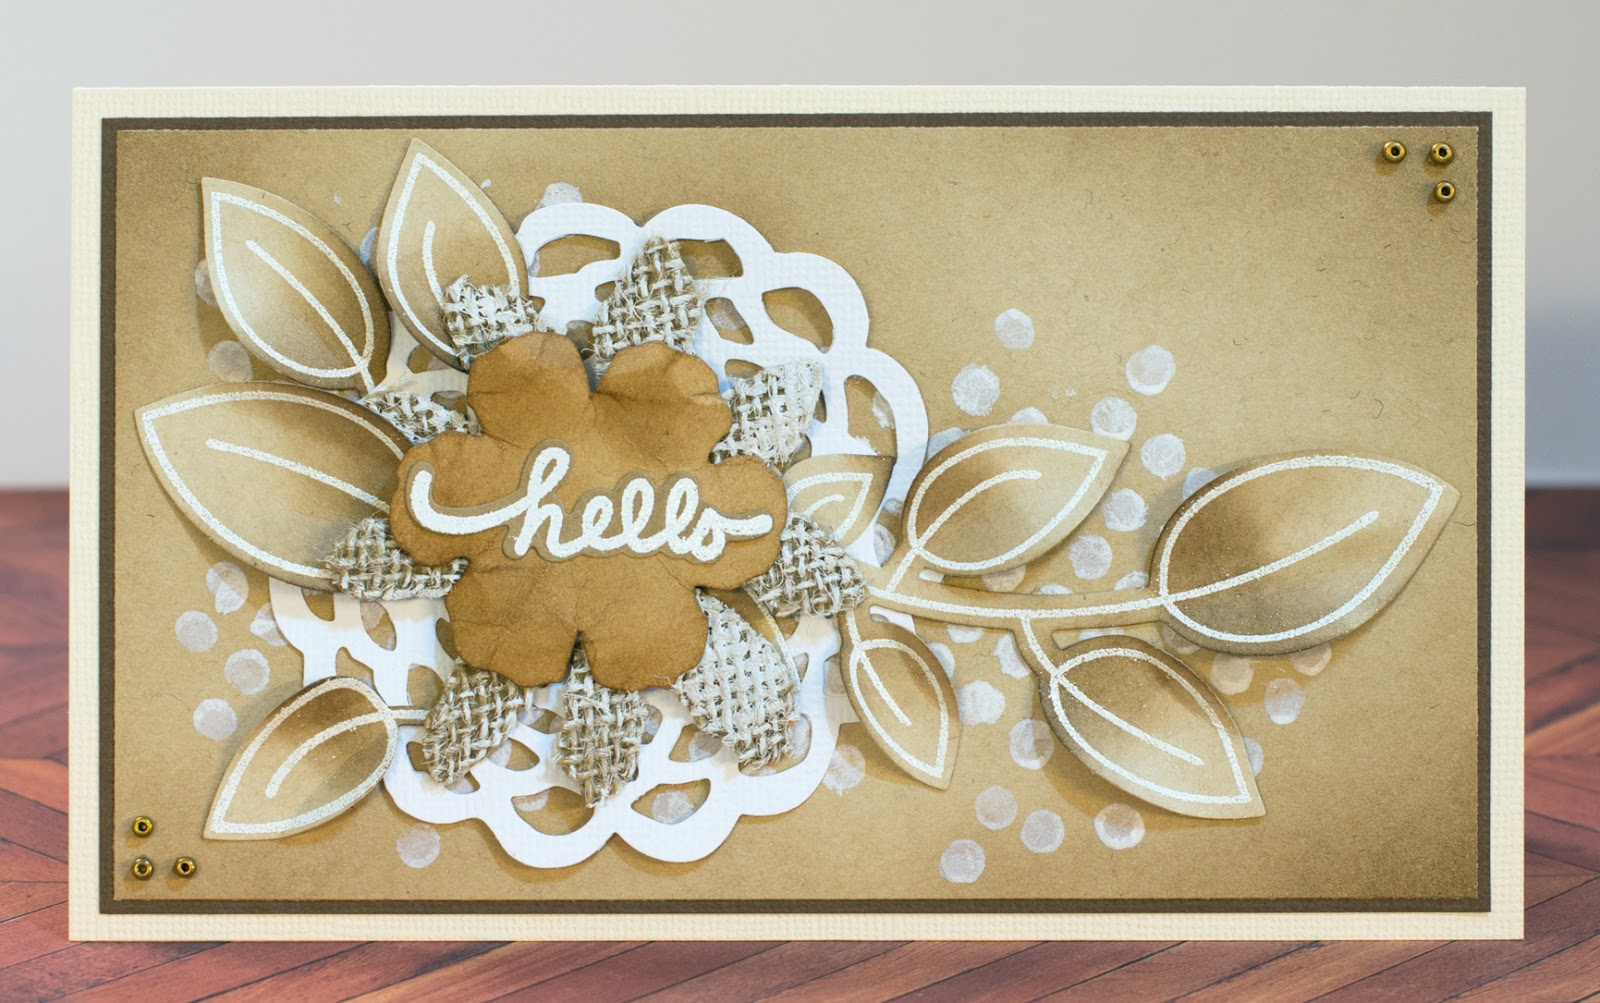 Cardmaking: Stamping with white